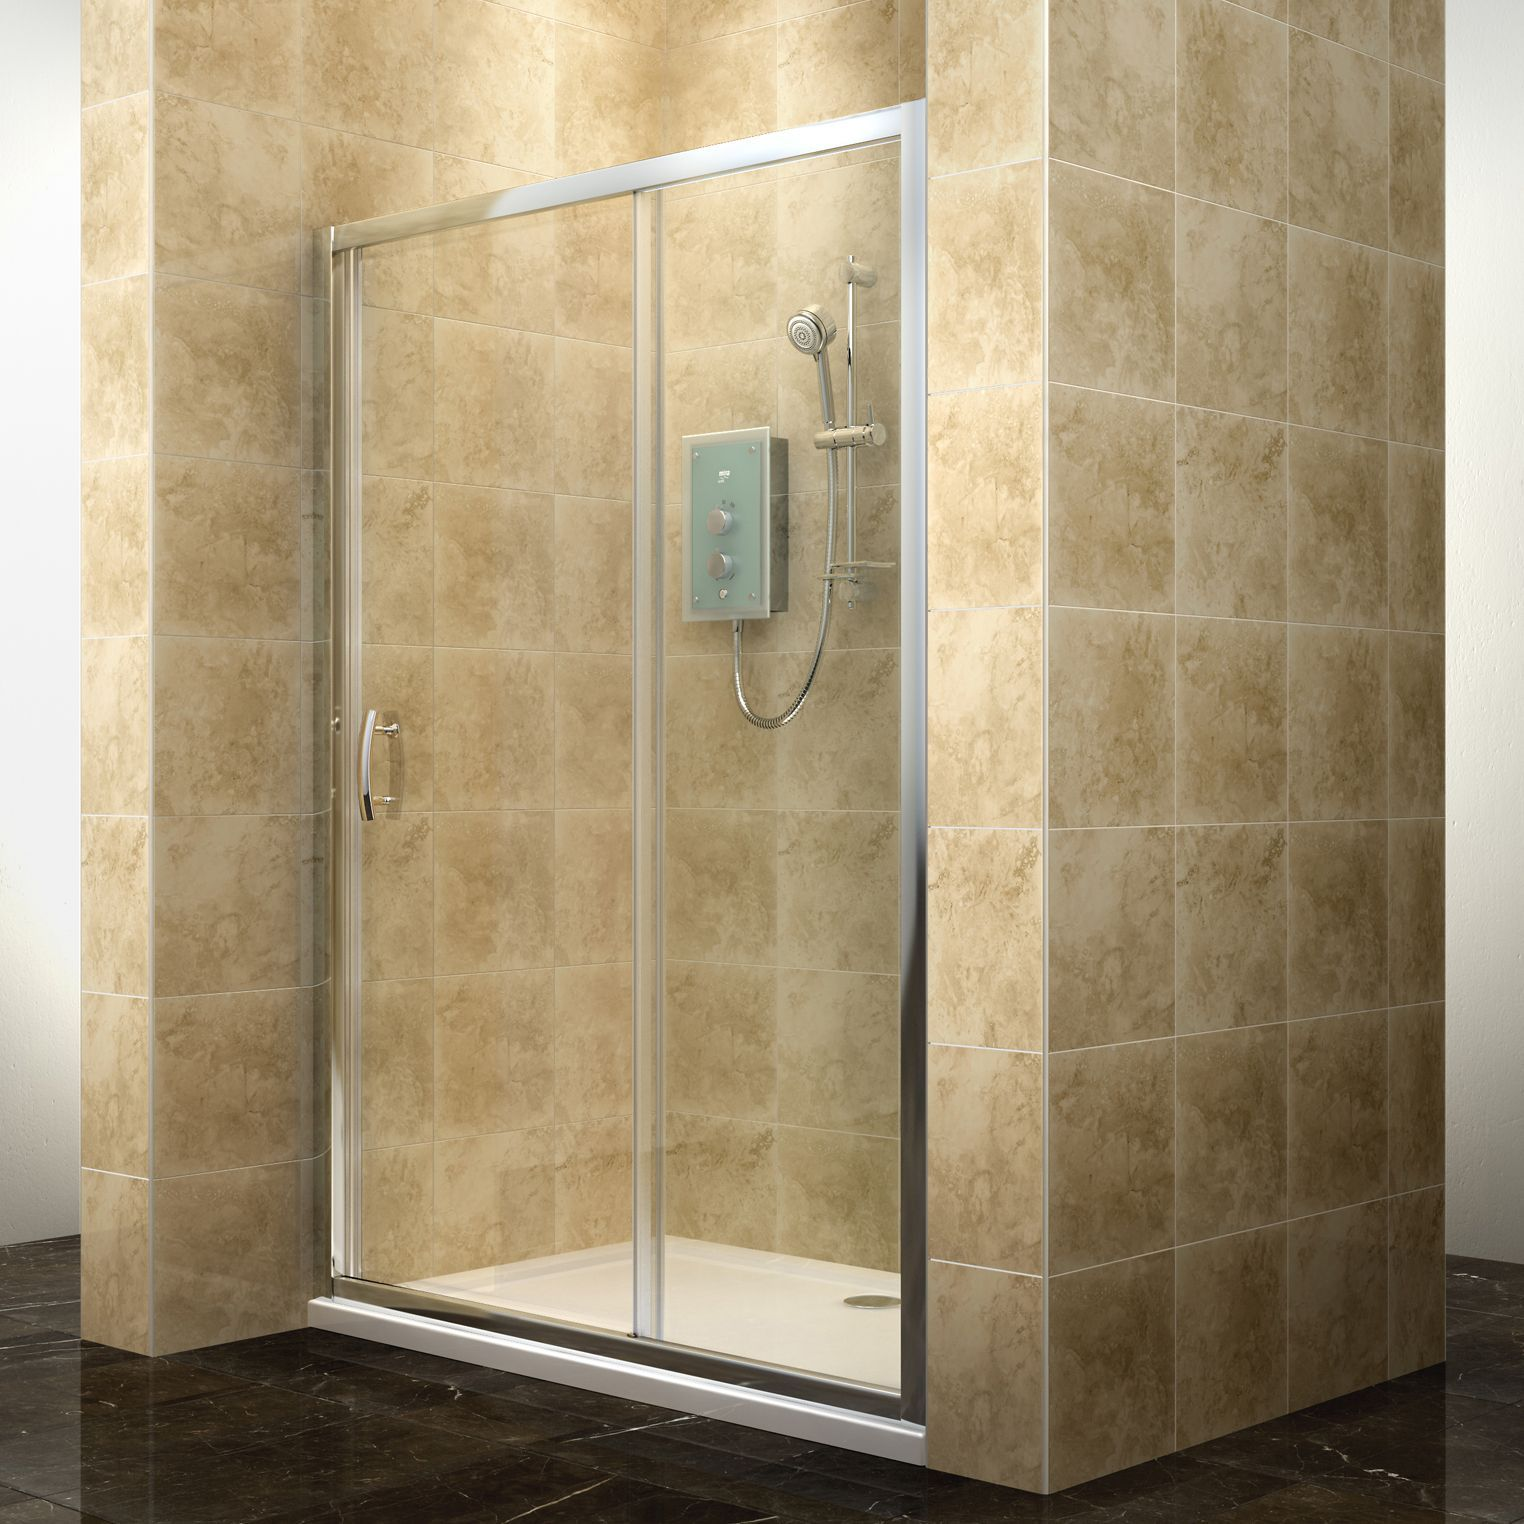 Cooke Lewis Deluvio Rectangular Shower Door W 1200mm D 1200mm Departments Diy At B Q Shower Doors Sliding Shower Door Modern Sliding Doors